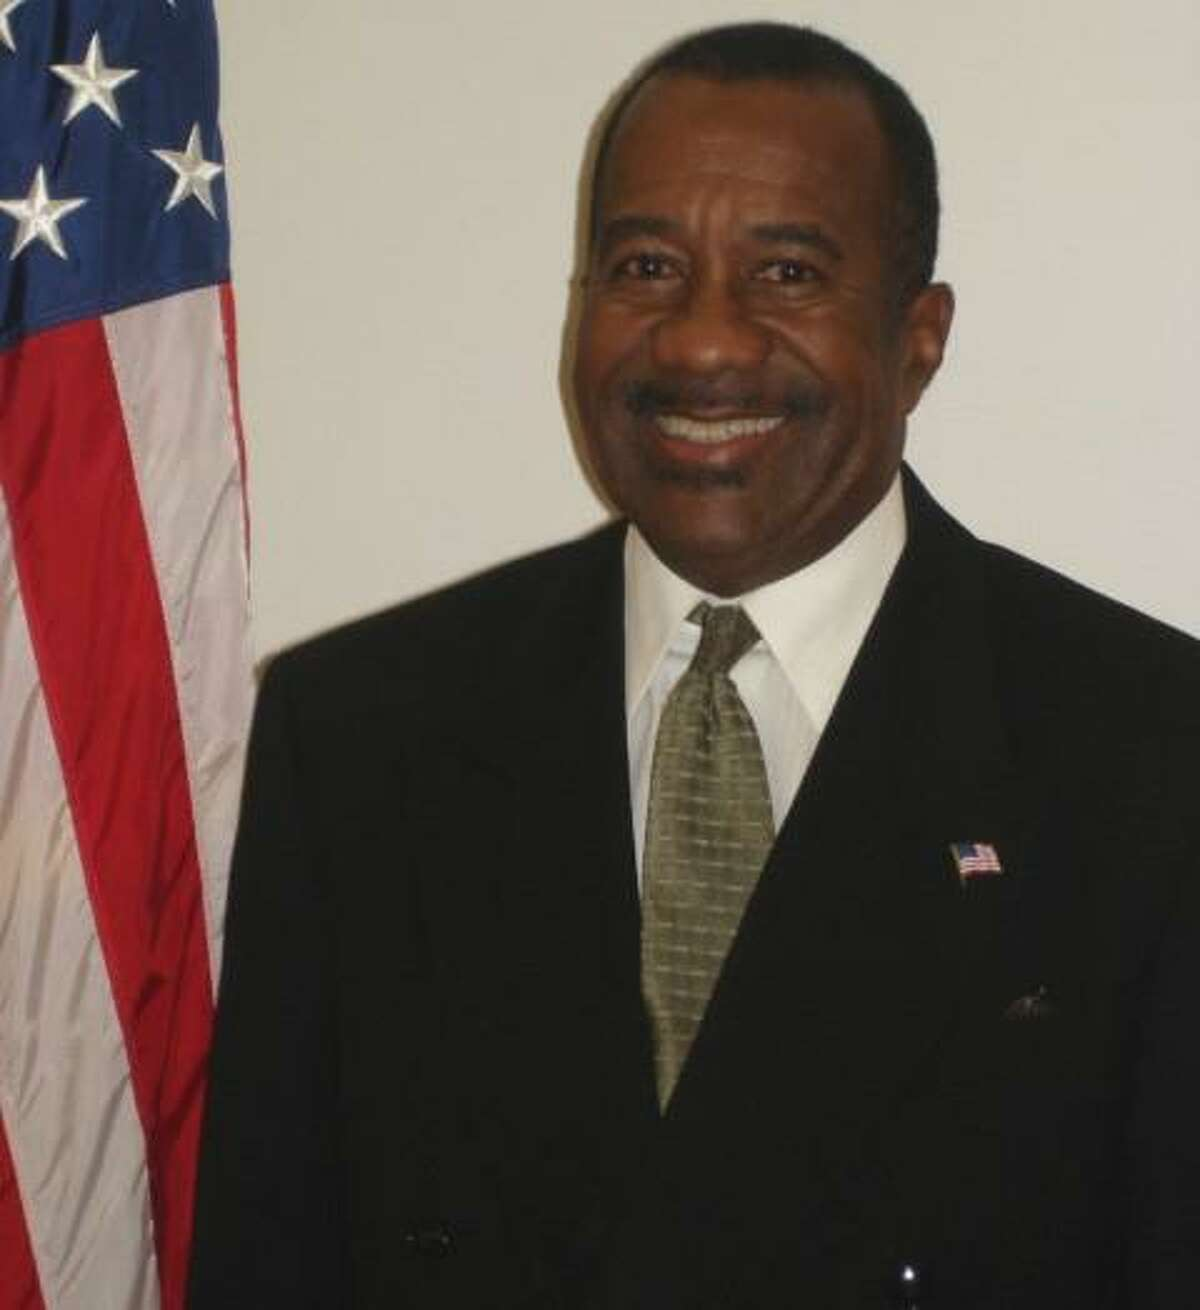 The U. S. House of Representatives recently recognized Rodney Griffin, a Fort Bend County resident, for his dedicated service.